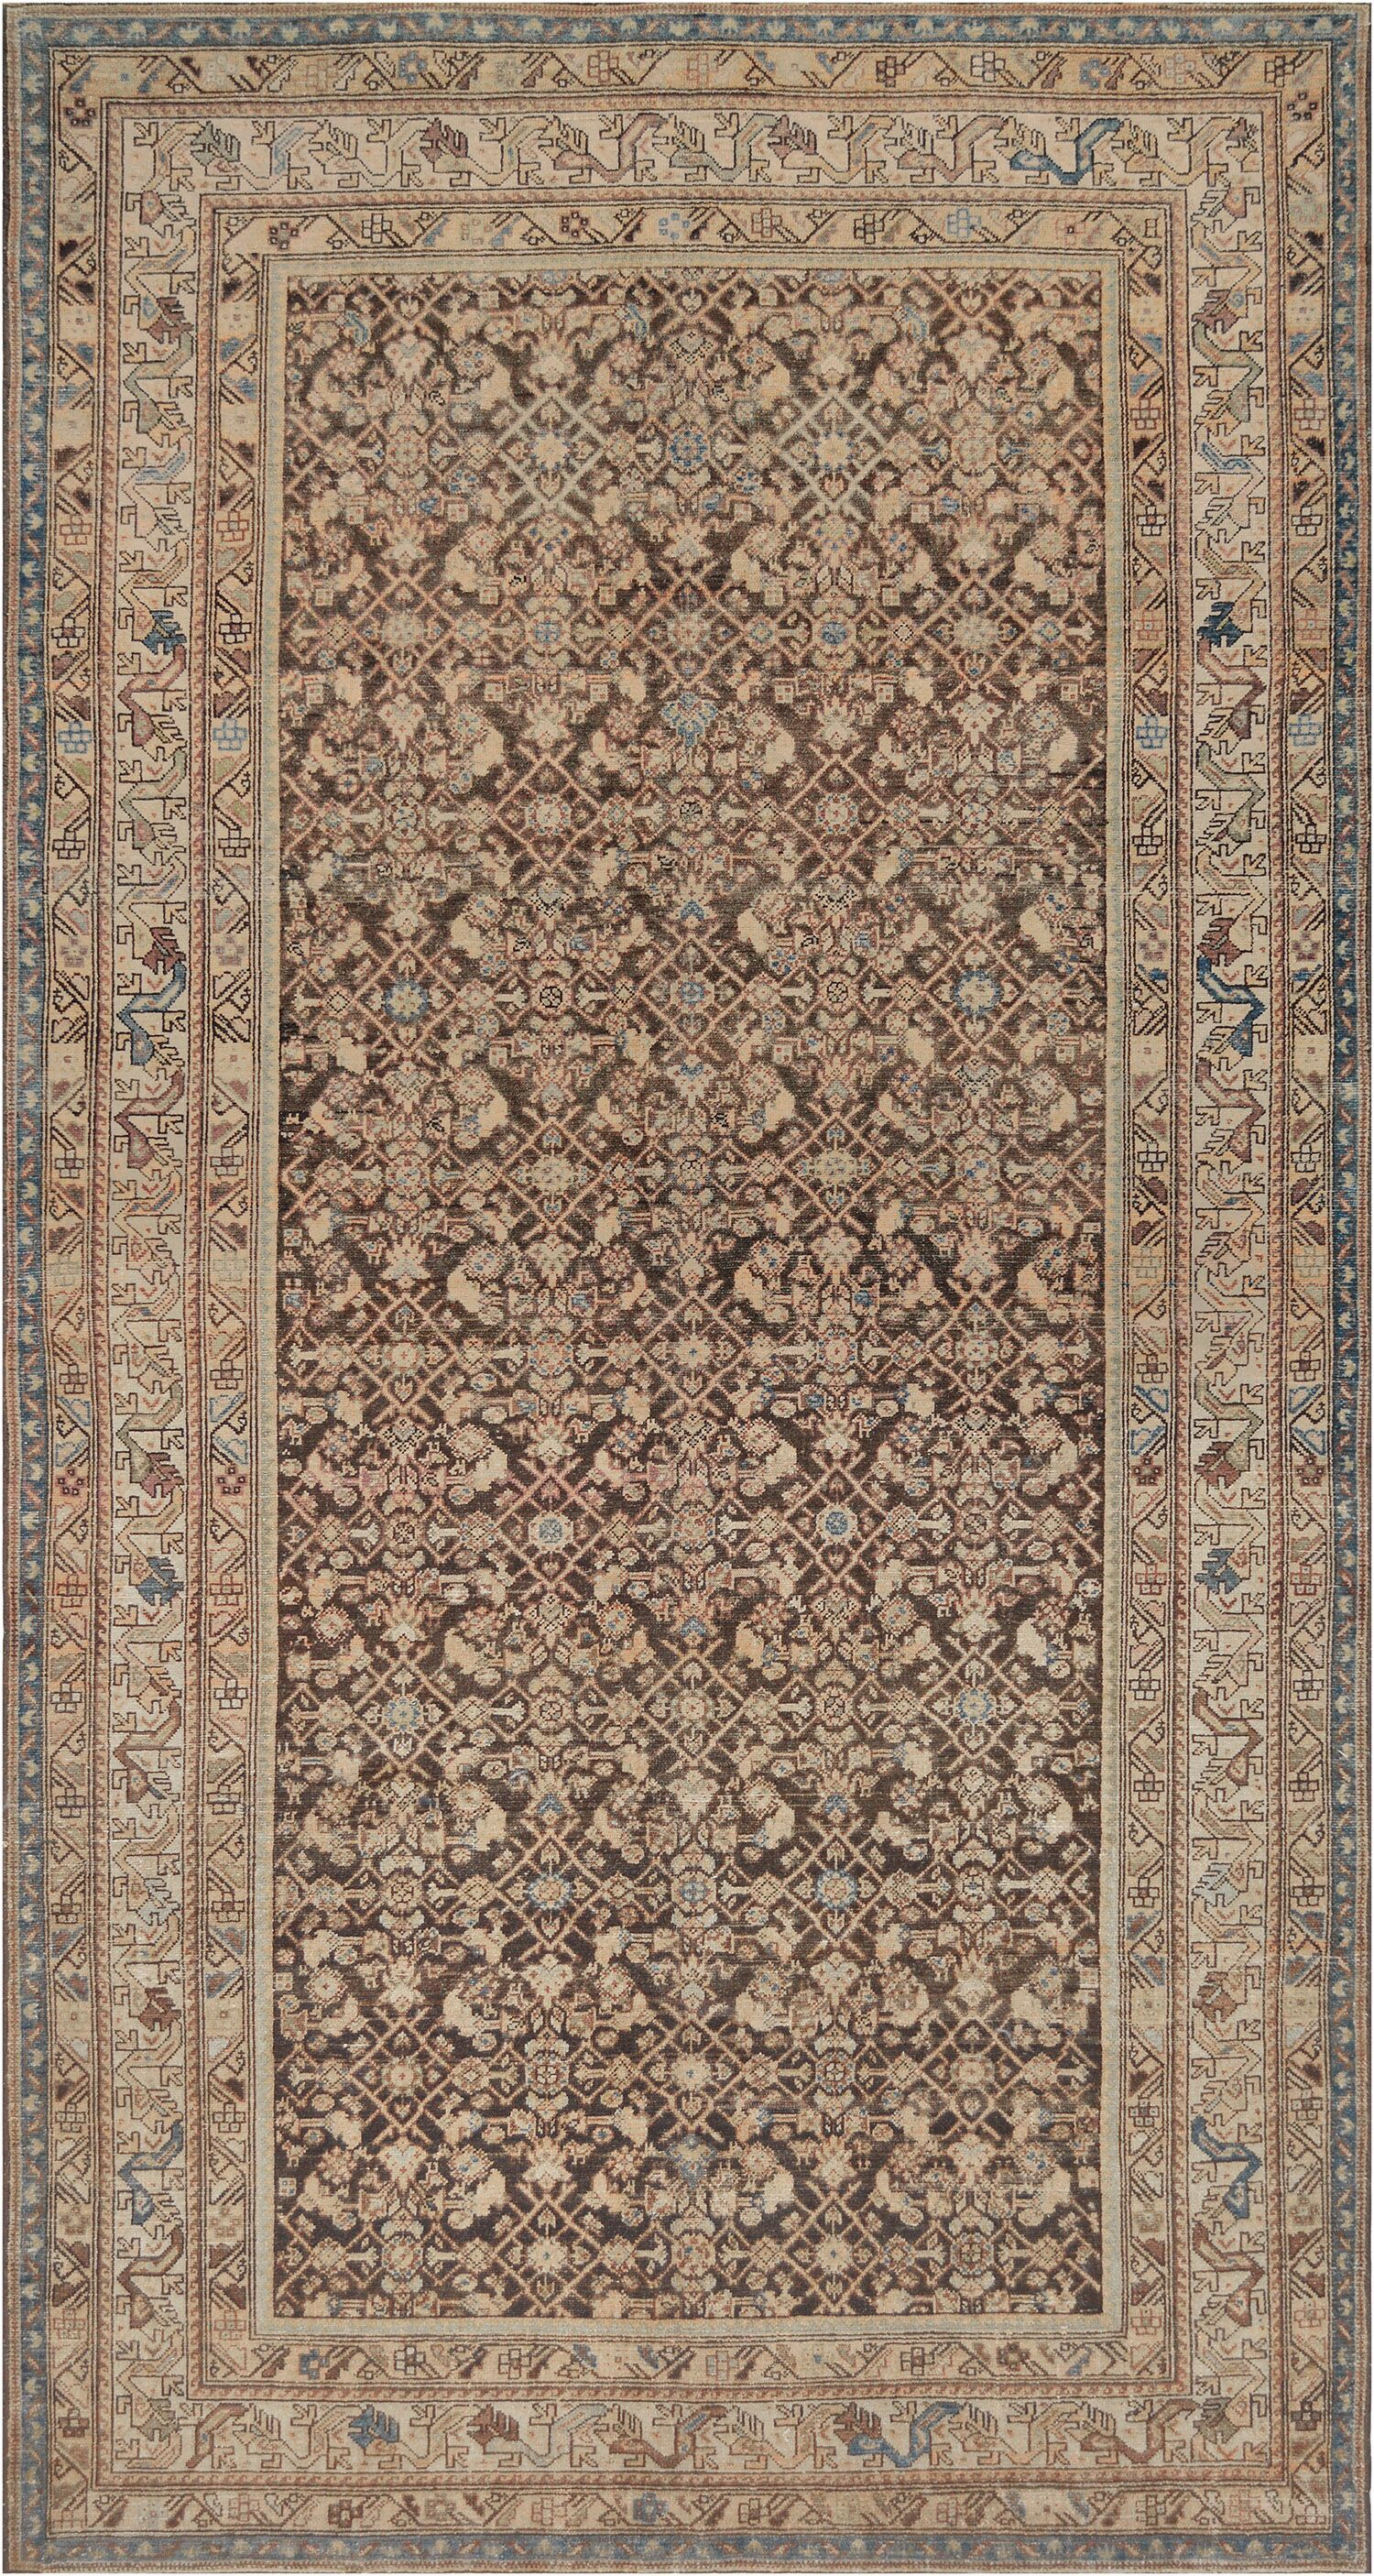 One-of-a-Kind Antique Malayer Handwoven Wool Beige Indoor Area Rug